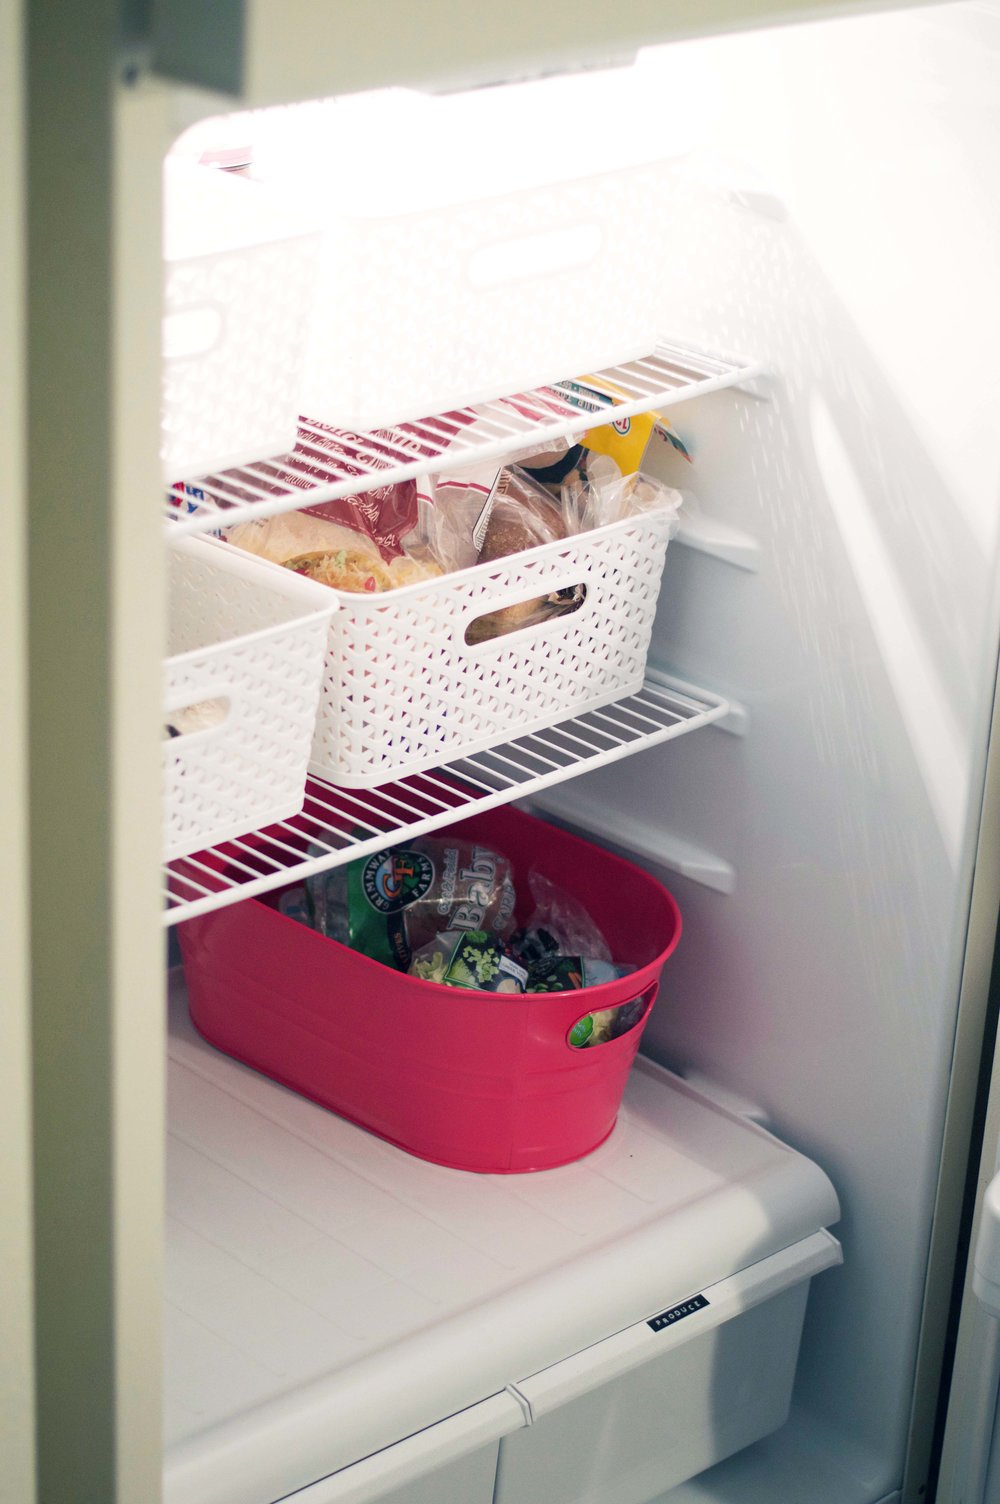 fridge-organization-1